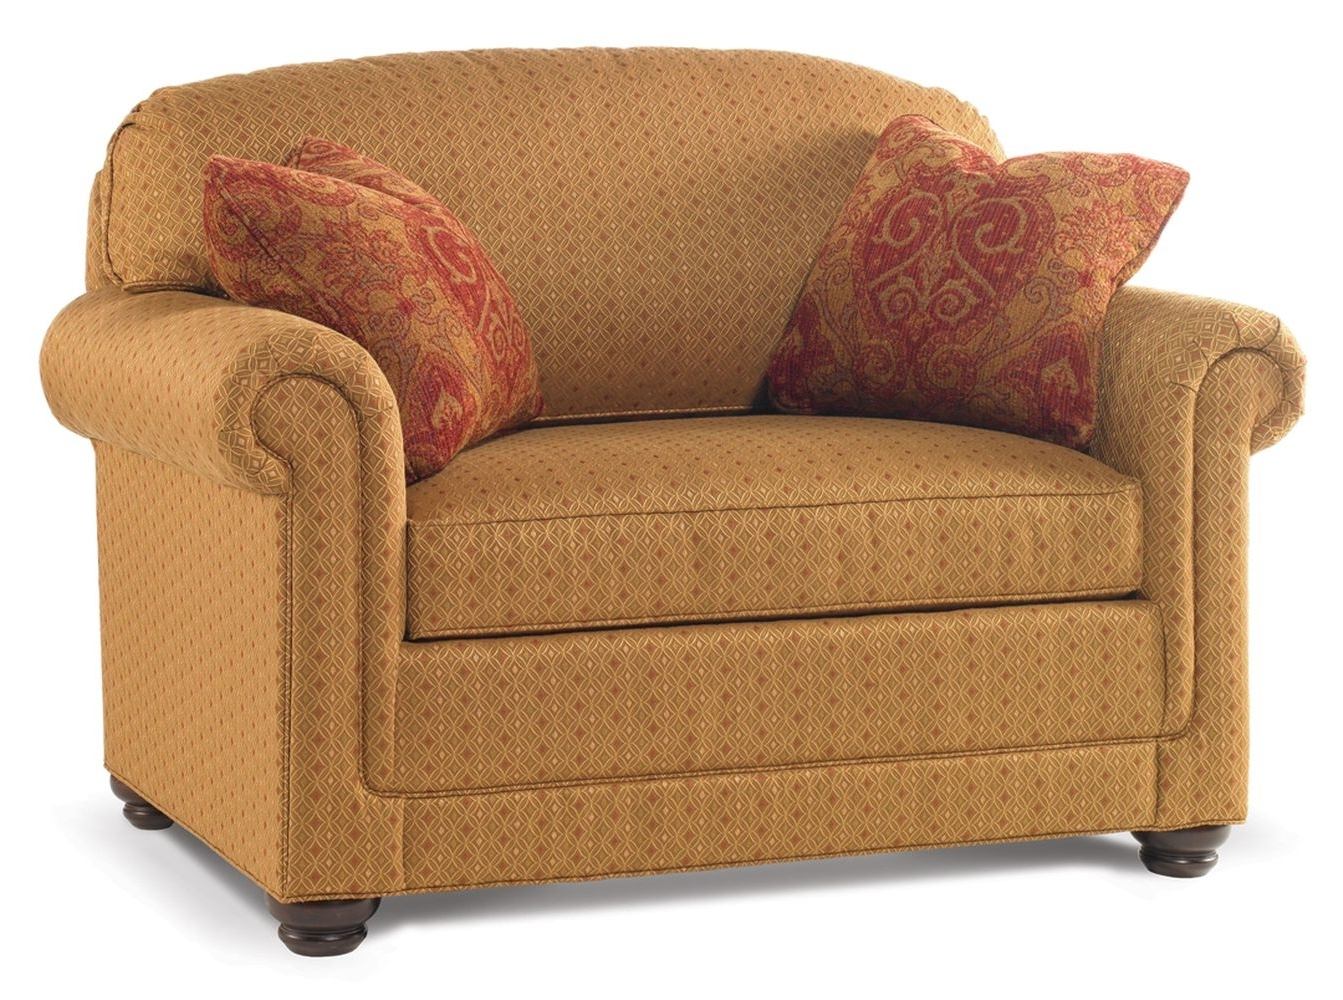 Small Twin Sleeper Sofas Chairs With Pillow And Storage Plus Brown Inside Well Known Sofas And Chairs (View 15 of 15)